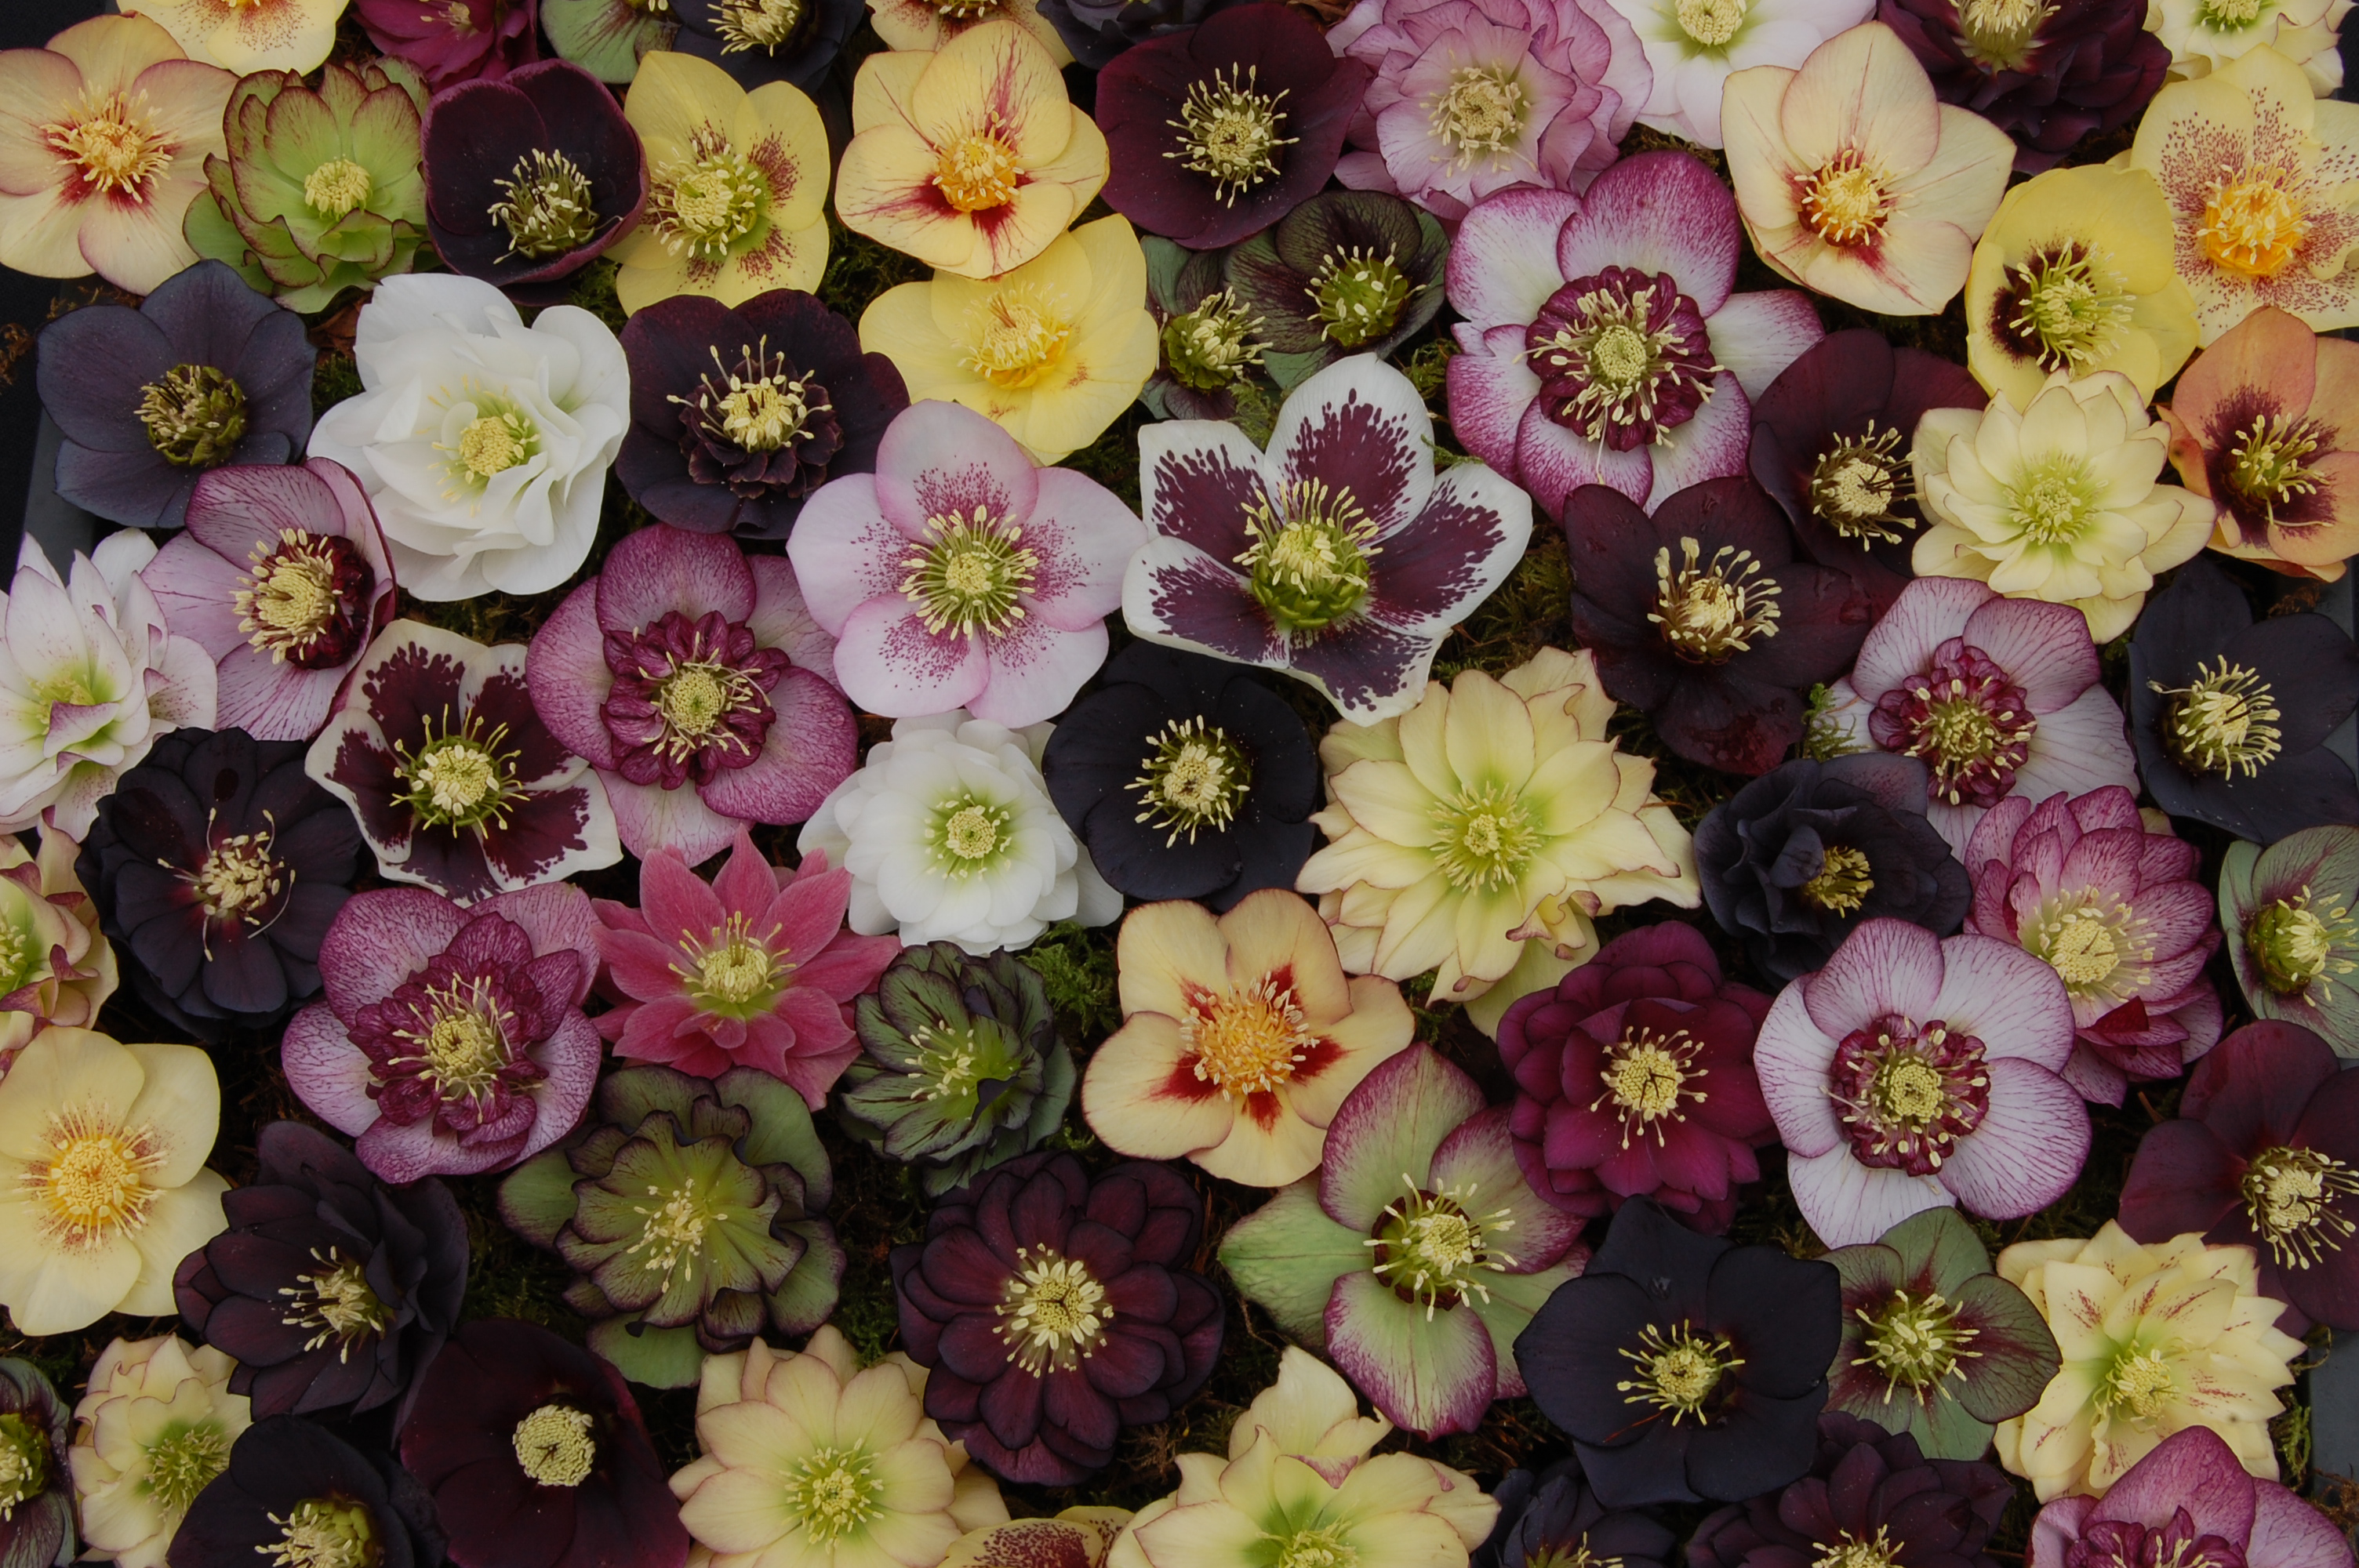 The Hellebore Popular Early And Now In A Dazzling Variety The